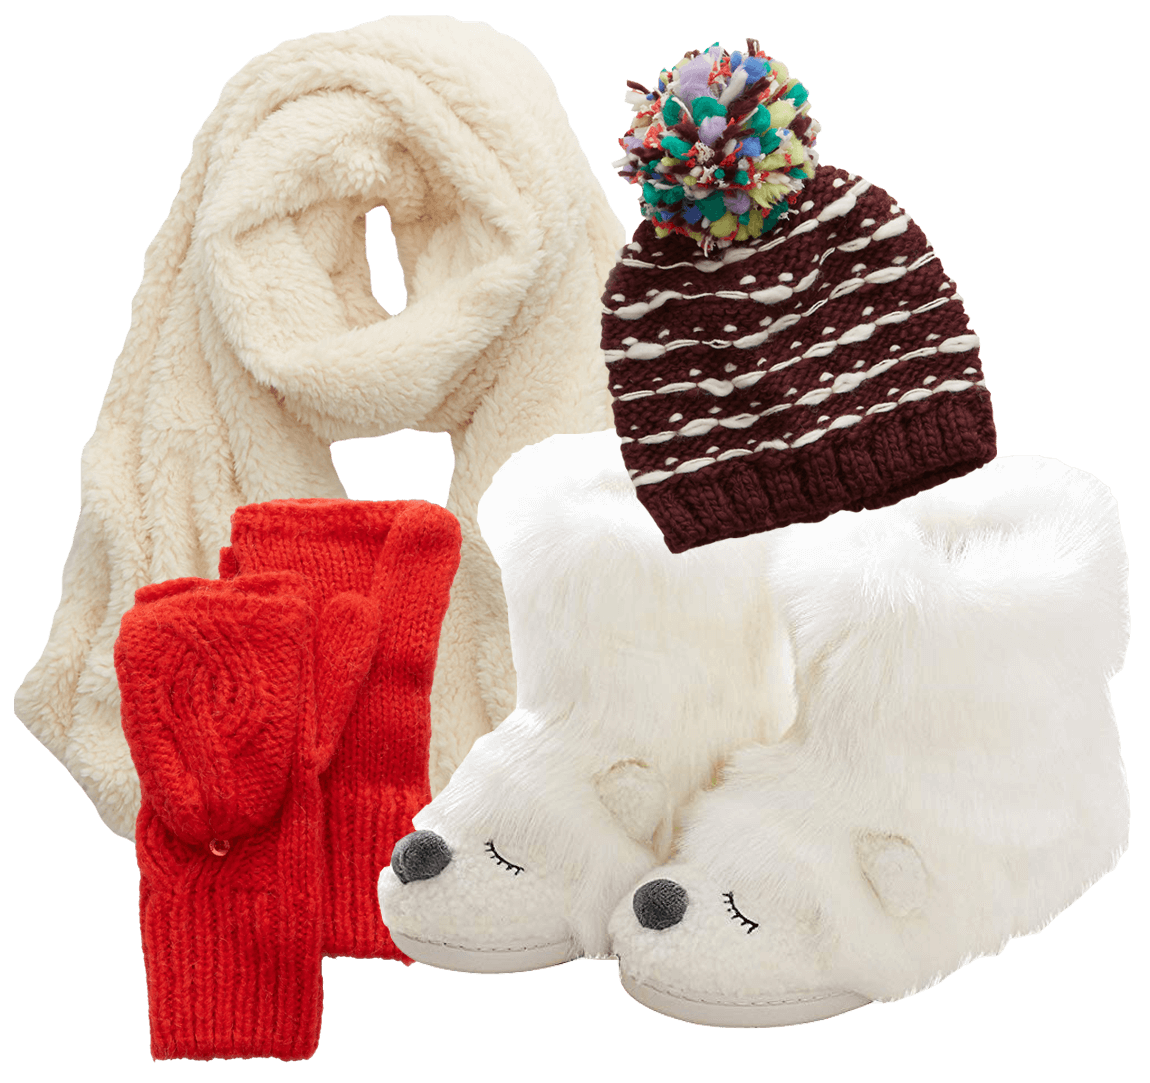 scarf, hat, mittens, slippers